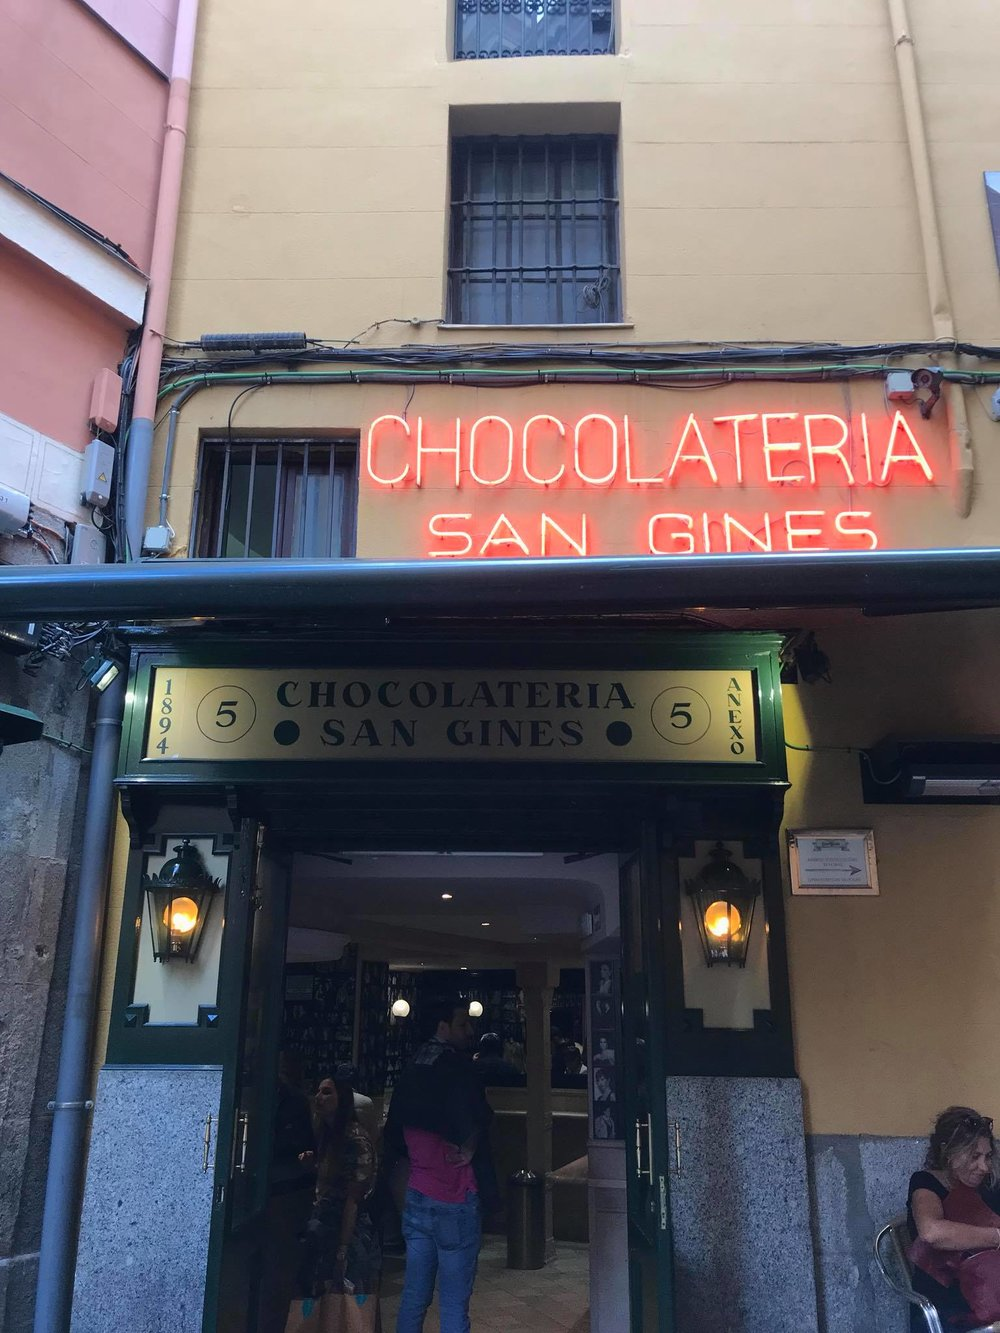 The famous Chocolatería San Ginés